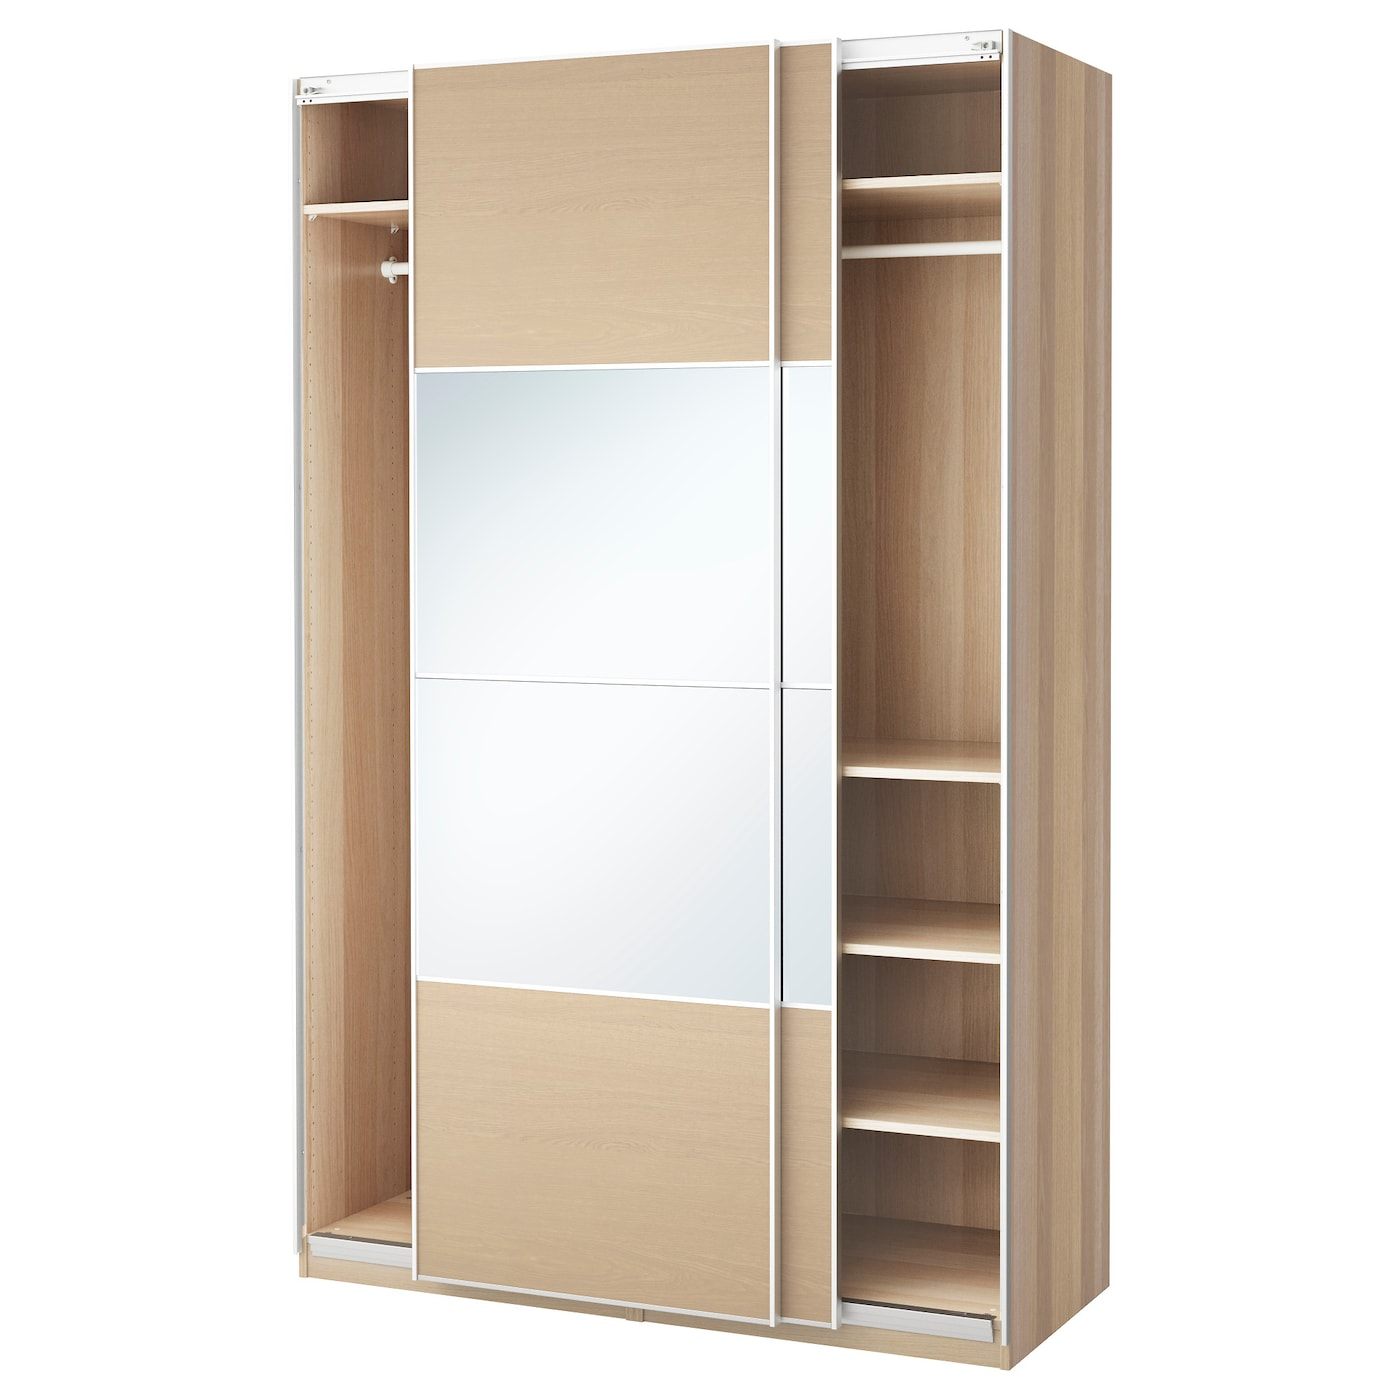 #896942 PAX Wardrobe White Stained Oak Effect/auli Ilseng  945 armoire porte coulissante pin 2000x2000 px @ aertt.com